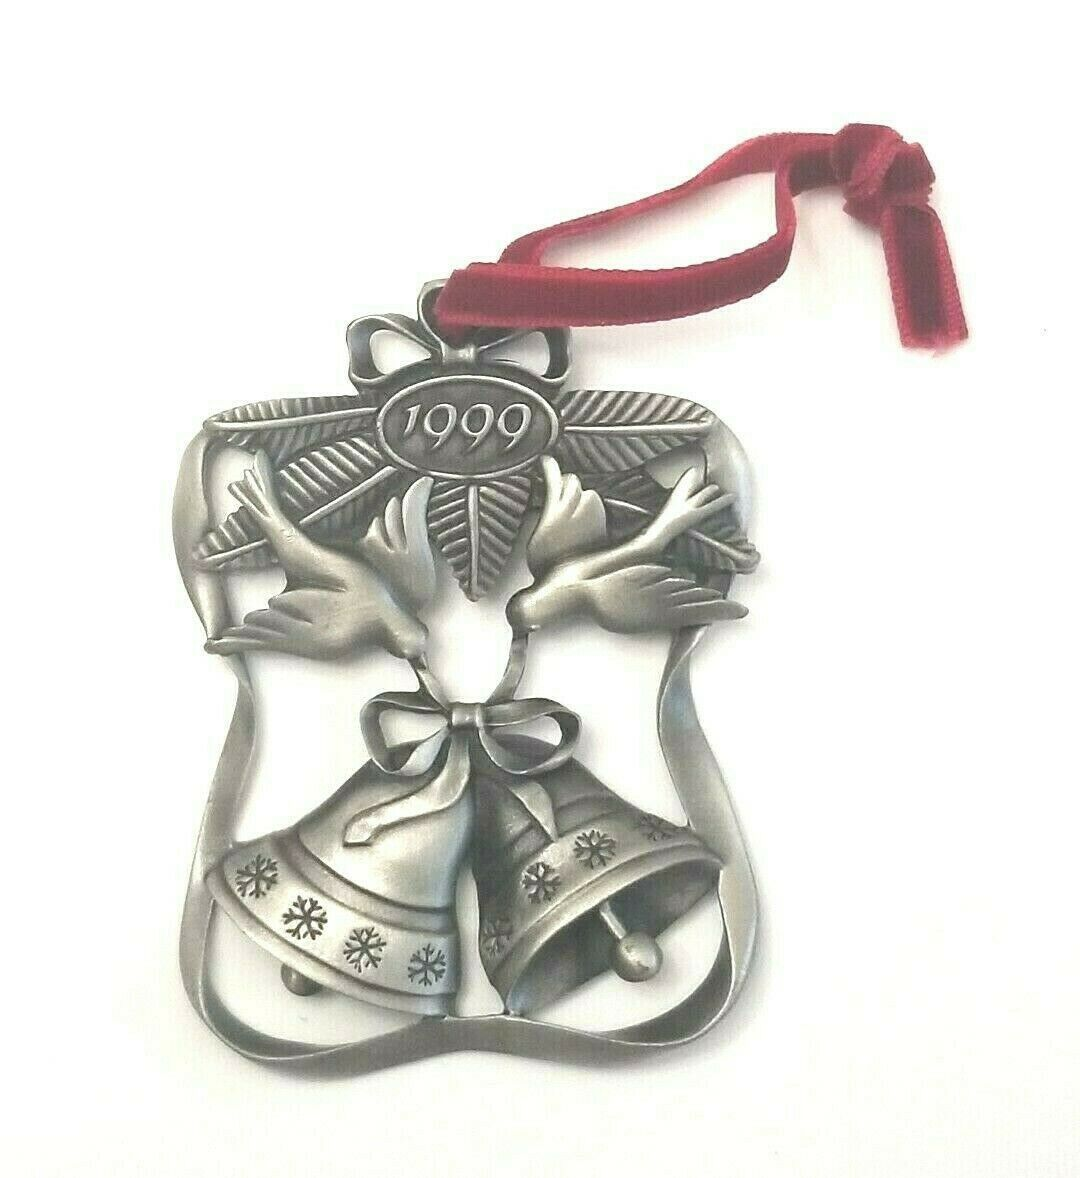 Avon Christmas 1999 Season of Peace Doves and Bells Pewter Collectible Ornament - $13.00